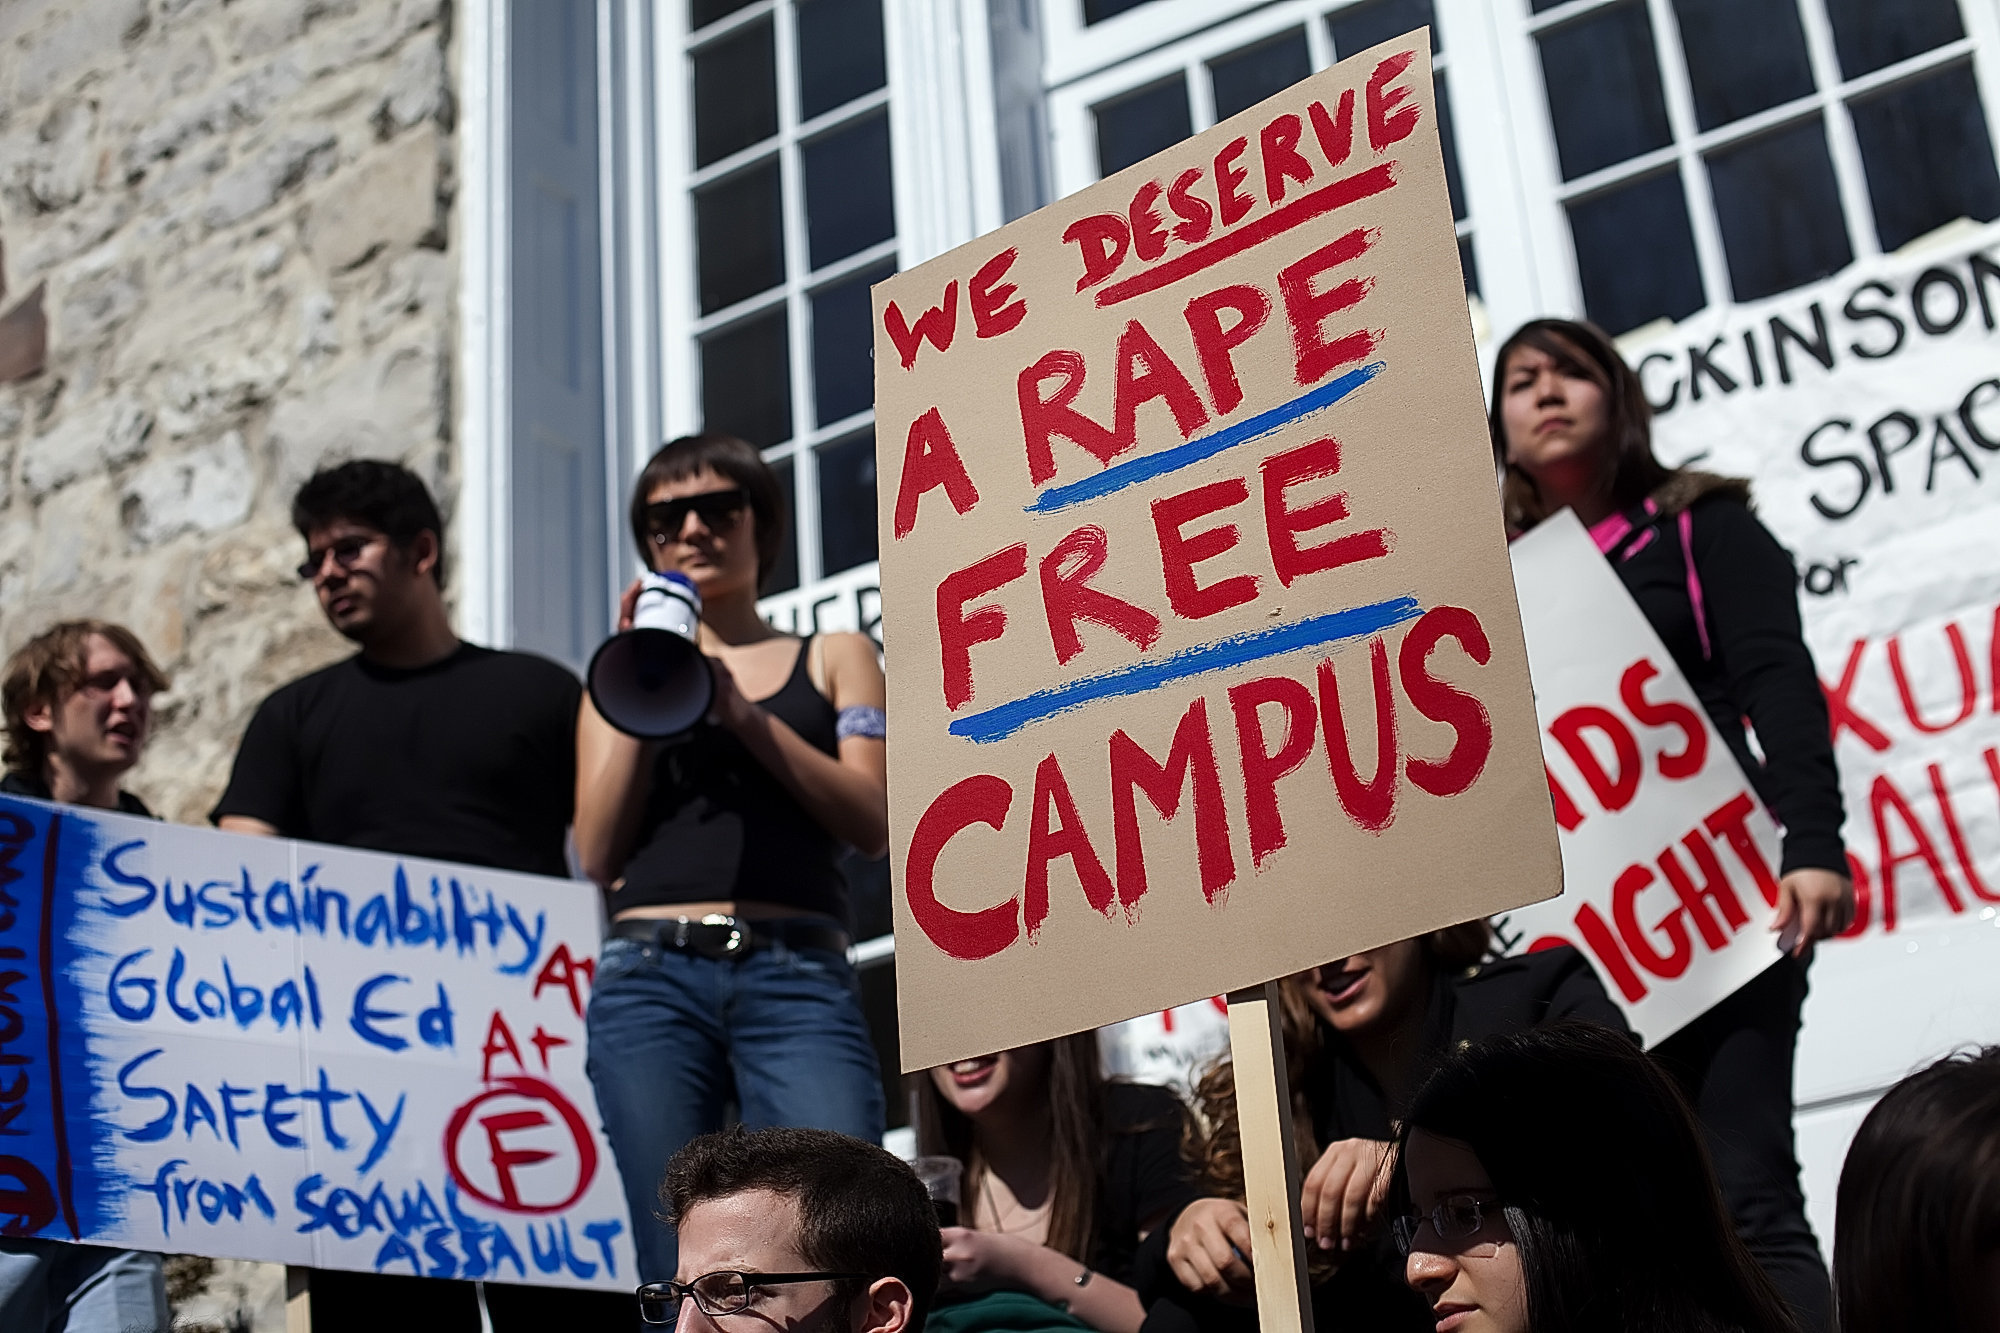 sexual violence and assaults in college Each year, tens of thousands of women who attend college in the us become survivors of sexual assault, yet colleges and universities lack any real incentive to investigate these incidents or comply with federal reporting standards under title ix, colleges and universities have a legal obligation to provide an environment.